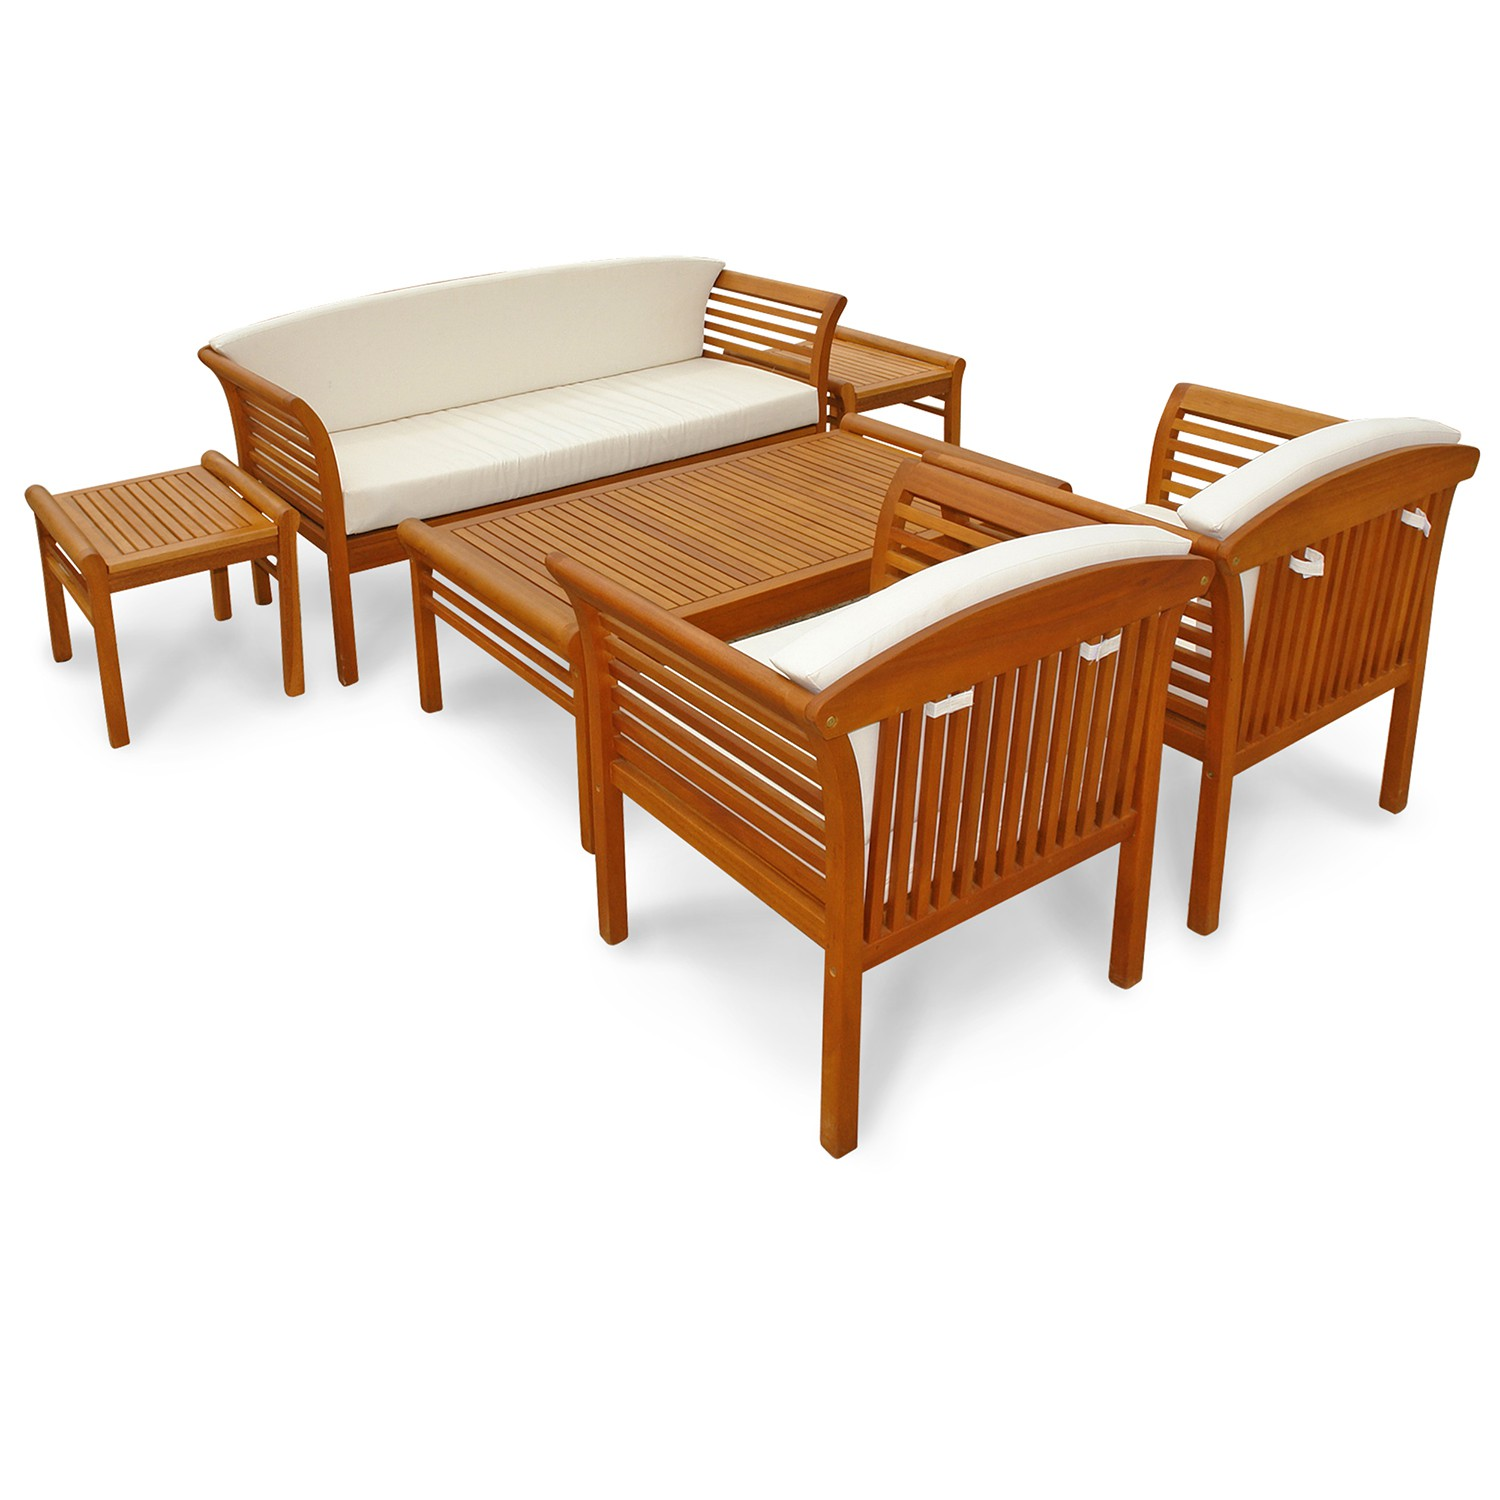 loungem bel garnitur gartenset sitzgruppe essgruppe gartenm bel set 6 tlg holz ebay. Black Bedroom Furniture Sets. Home Design Ideas